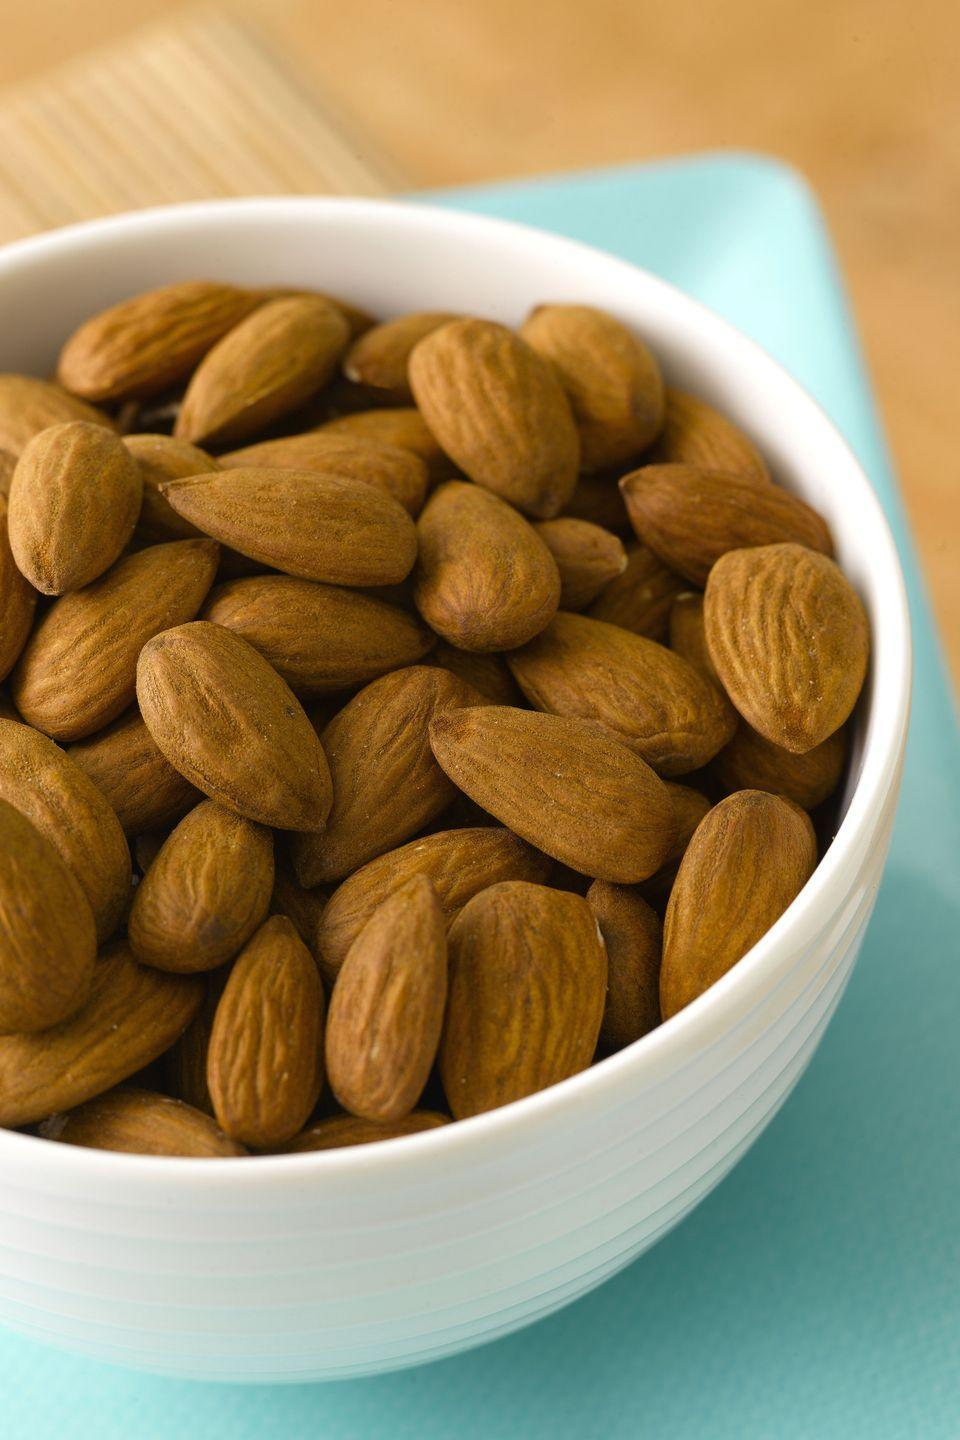 """<p>Just a handful of these and you'll be dozing off in no time. Pasquella says <a href=""""https://www.goodhousekeeping.com/health/diet-nutrition/a19503705/almonds-nutrition/"""" rel=""""nofollow noopener"""" target=""""_blank"""" data-ylk=""""slk:almonds"""" class=""""link rapid-noclick-resp"""">almonds</a> contain tryptophan and magnesium, which both help to naturally reduce muscle and nerve function while also steadying your heart rhythm. </p><p>Almond butter or <a href=""""https://www.goodhousekeeping.com/health/diet-nutrition/a26866/health-benefits-peanut-butter/"""" rel=""""nofollow noopener"""" target=""""_blank"""" data-ylk=""""slk:peanut butter"""" class=""""link rapid-noclick-resp"""">peanut butter</a> will also work. Spread it on graham crackers, a banana, or <a href=""""https://www.goodhousekeeping.com/food-recipes/cooking/a47114/sweet-potato-toast-trend/"""" rel=""""nofollow noopener"""" target=""""_blank"""" data-ylk=""""slk:that sweet potato toast"""" class=""""link rapid-noclick-resp"""">that sweet potato toast</a>. Again, keep your dollop under a tablespoon so you're not feeling too stuffed before heading to bed.</p>"""